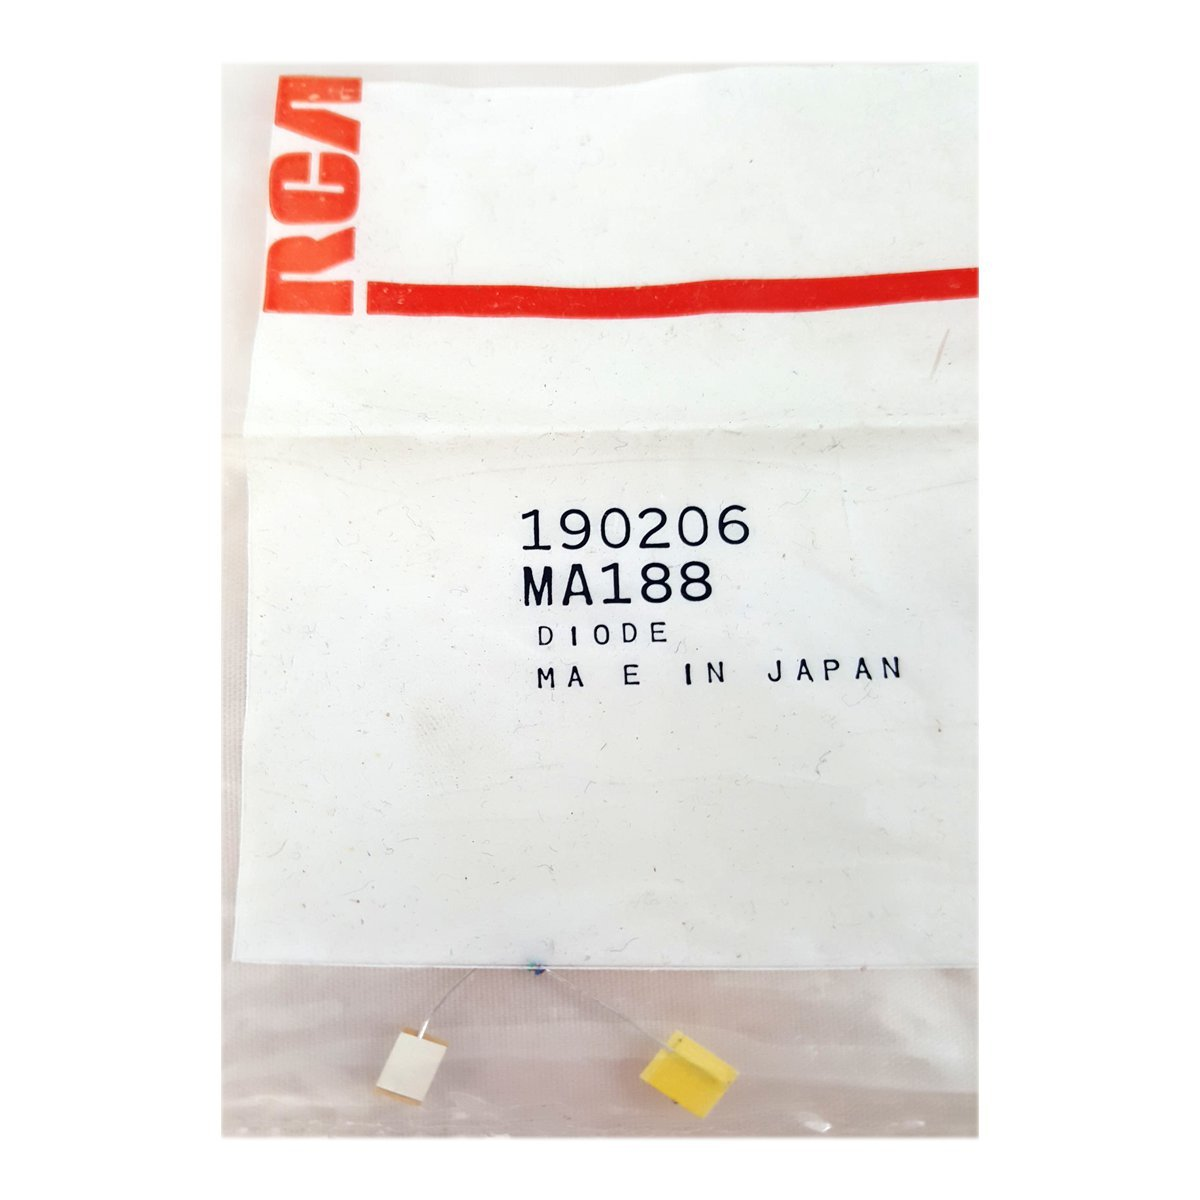 RCA VCR Replacement Part Diode No. 190206